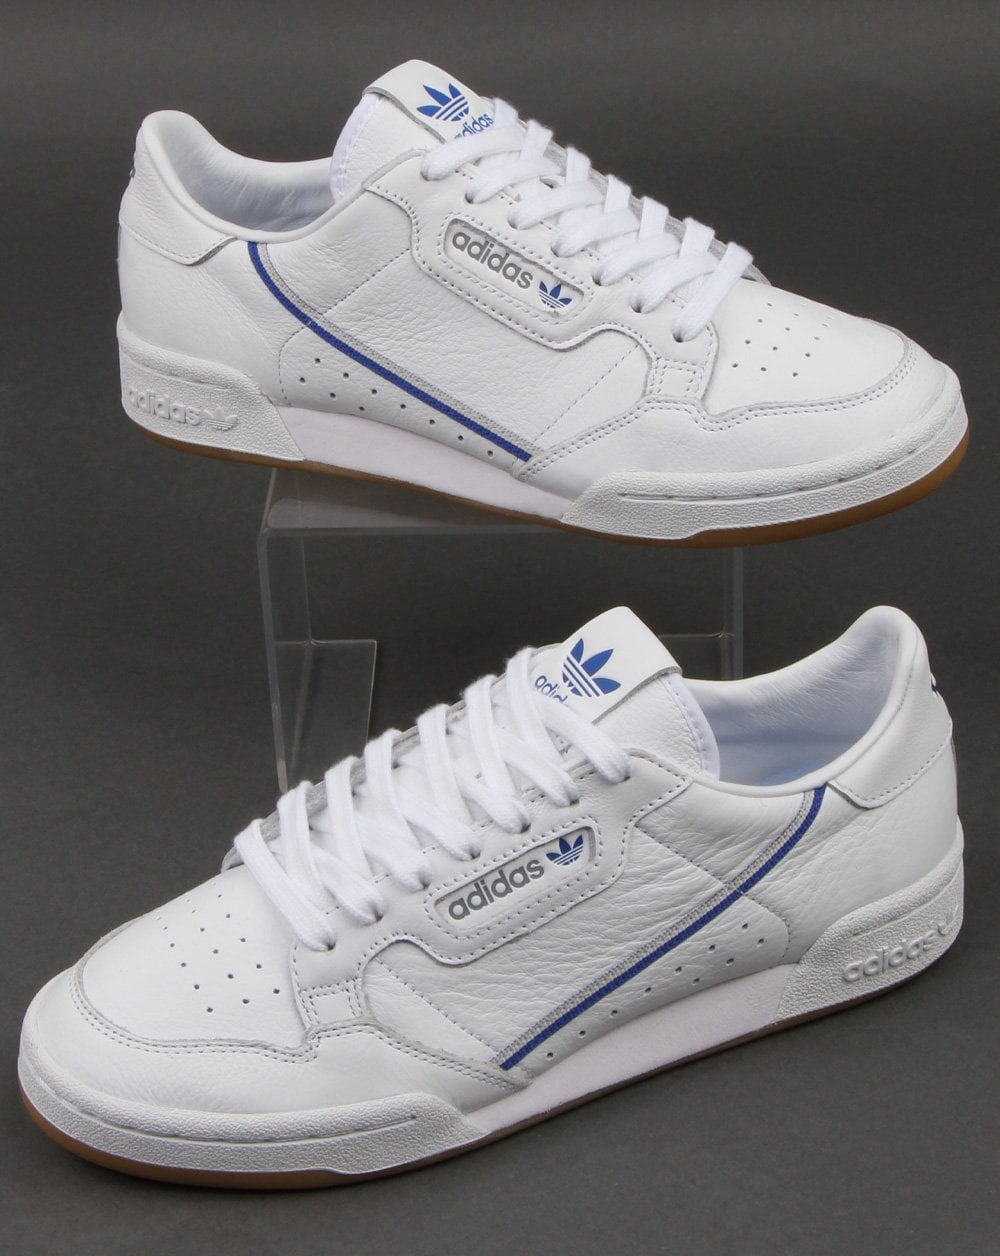 Adidas Continental 80 x TFL Trainers White/grey/blue